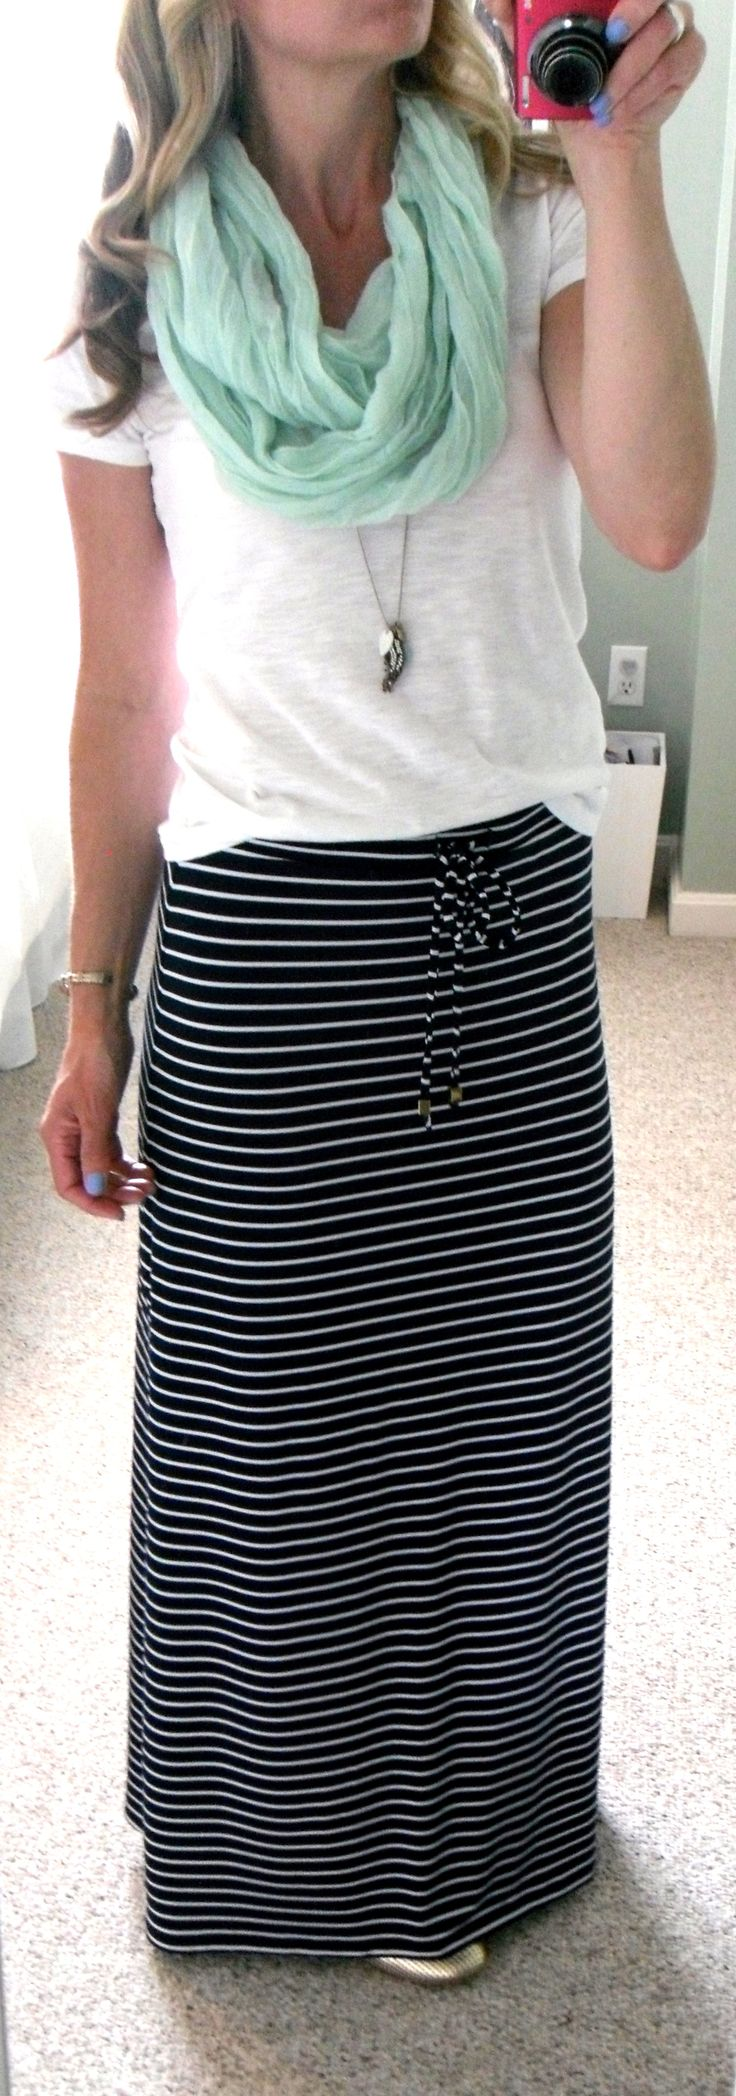 "Michael Kors navy blue and white stripe maxi skirt, F21 white slub knit v-neck t-shirt, mint infinity scarf, AE necklace, Target gold perforated ballet flats, Sally Hansen nail polish in ""Set Sail"""